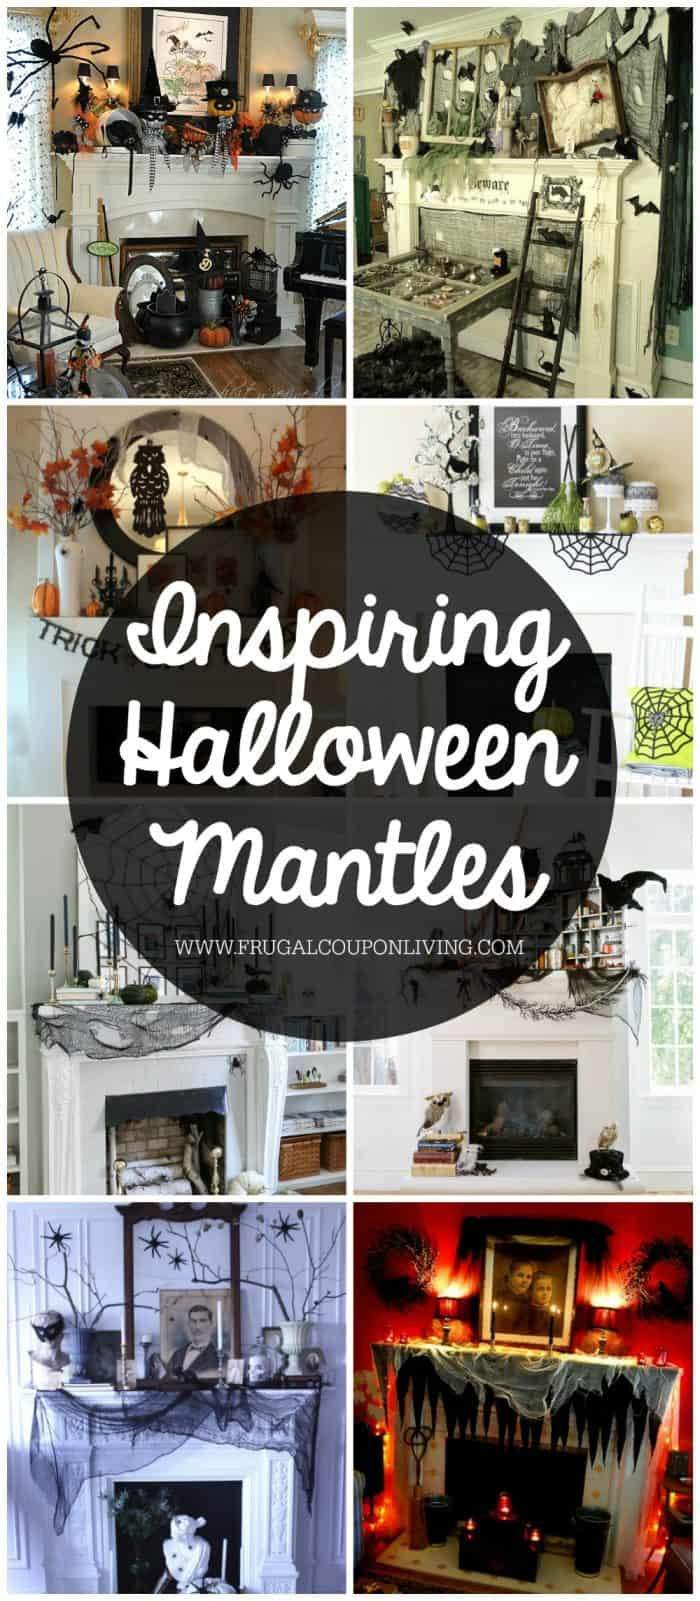 Inspiring-Halloween-Mantles-Collage-Frugal-Coupon-Living